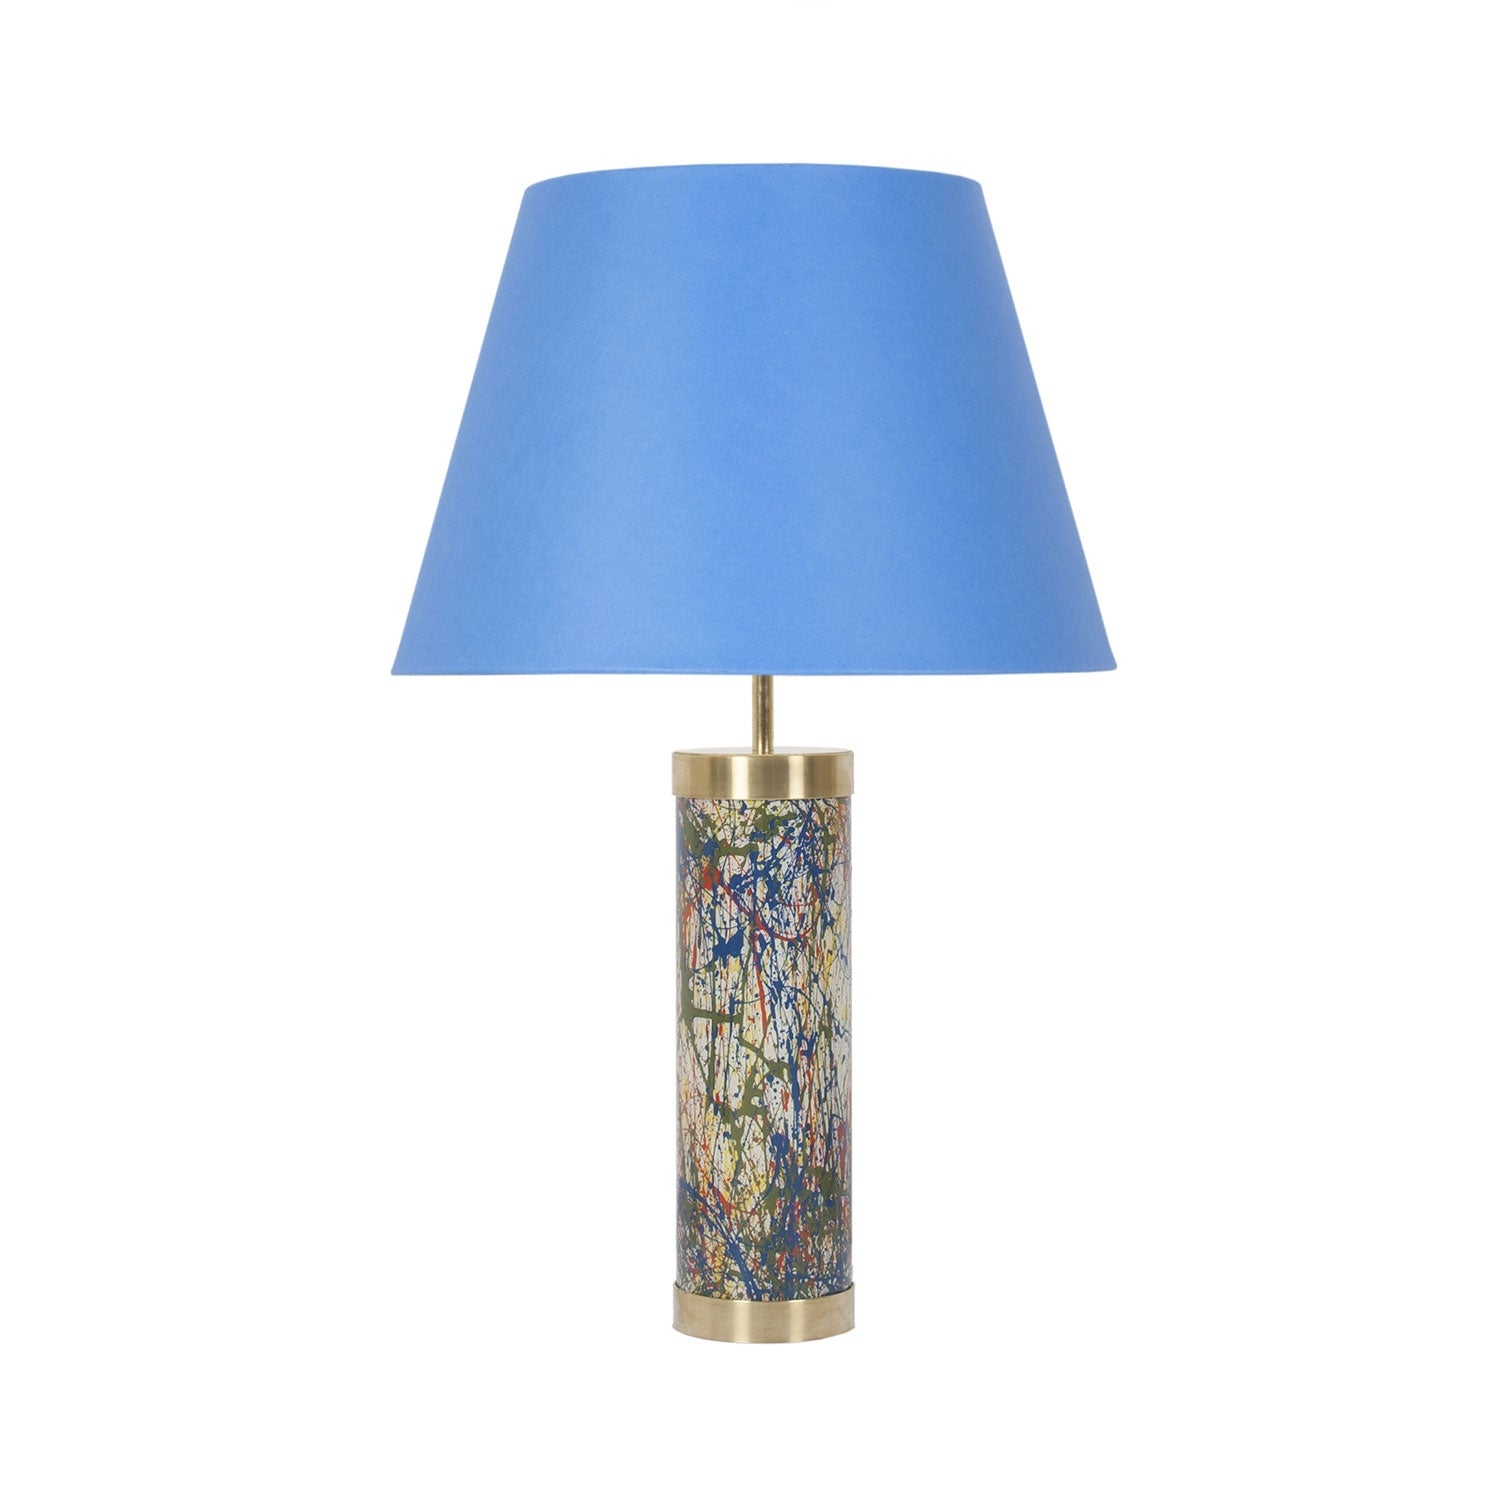 Glass & Brass Lamp - End of Day Confetti - White